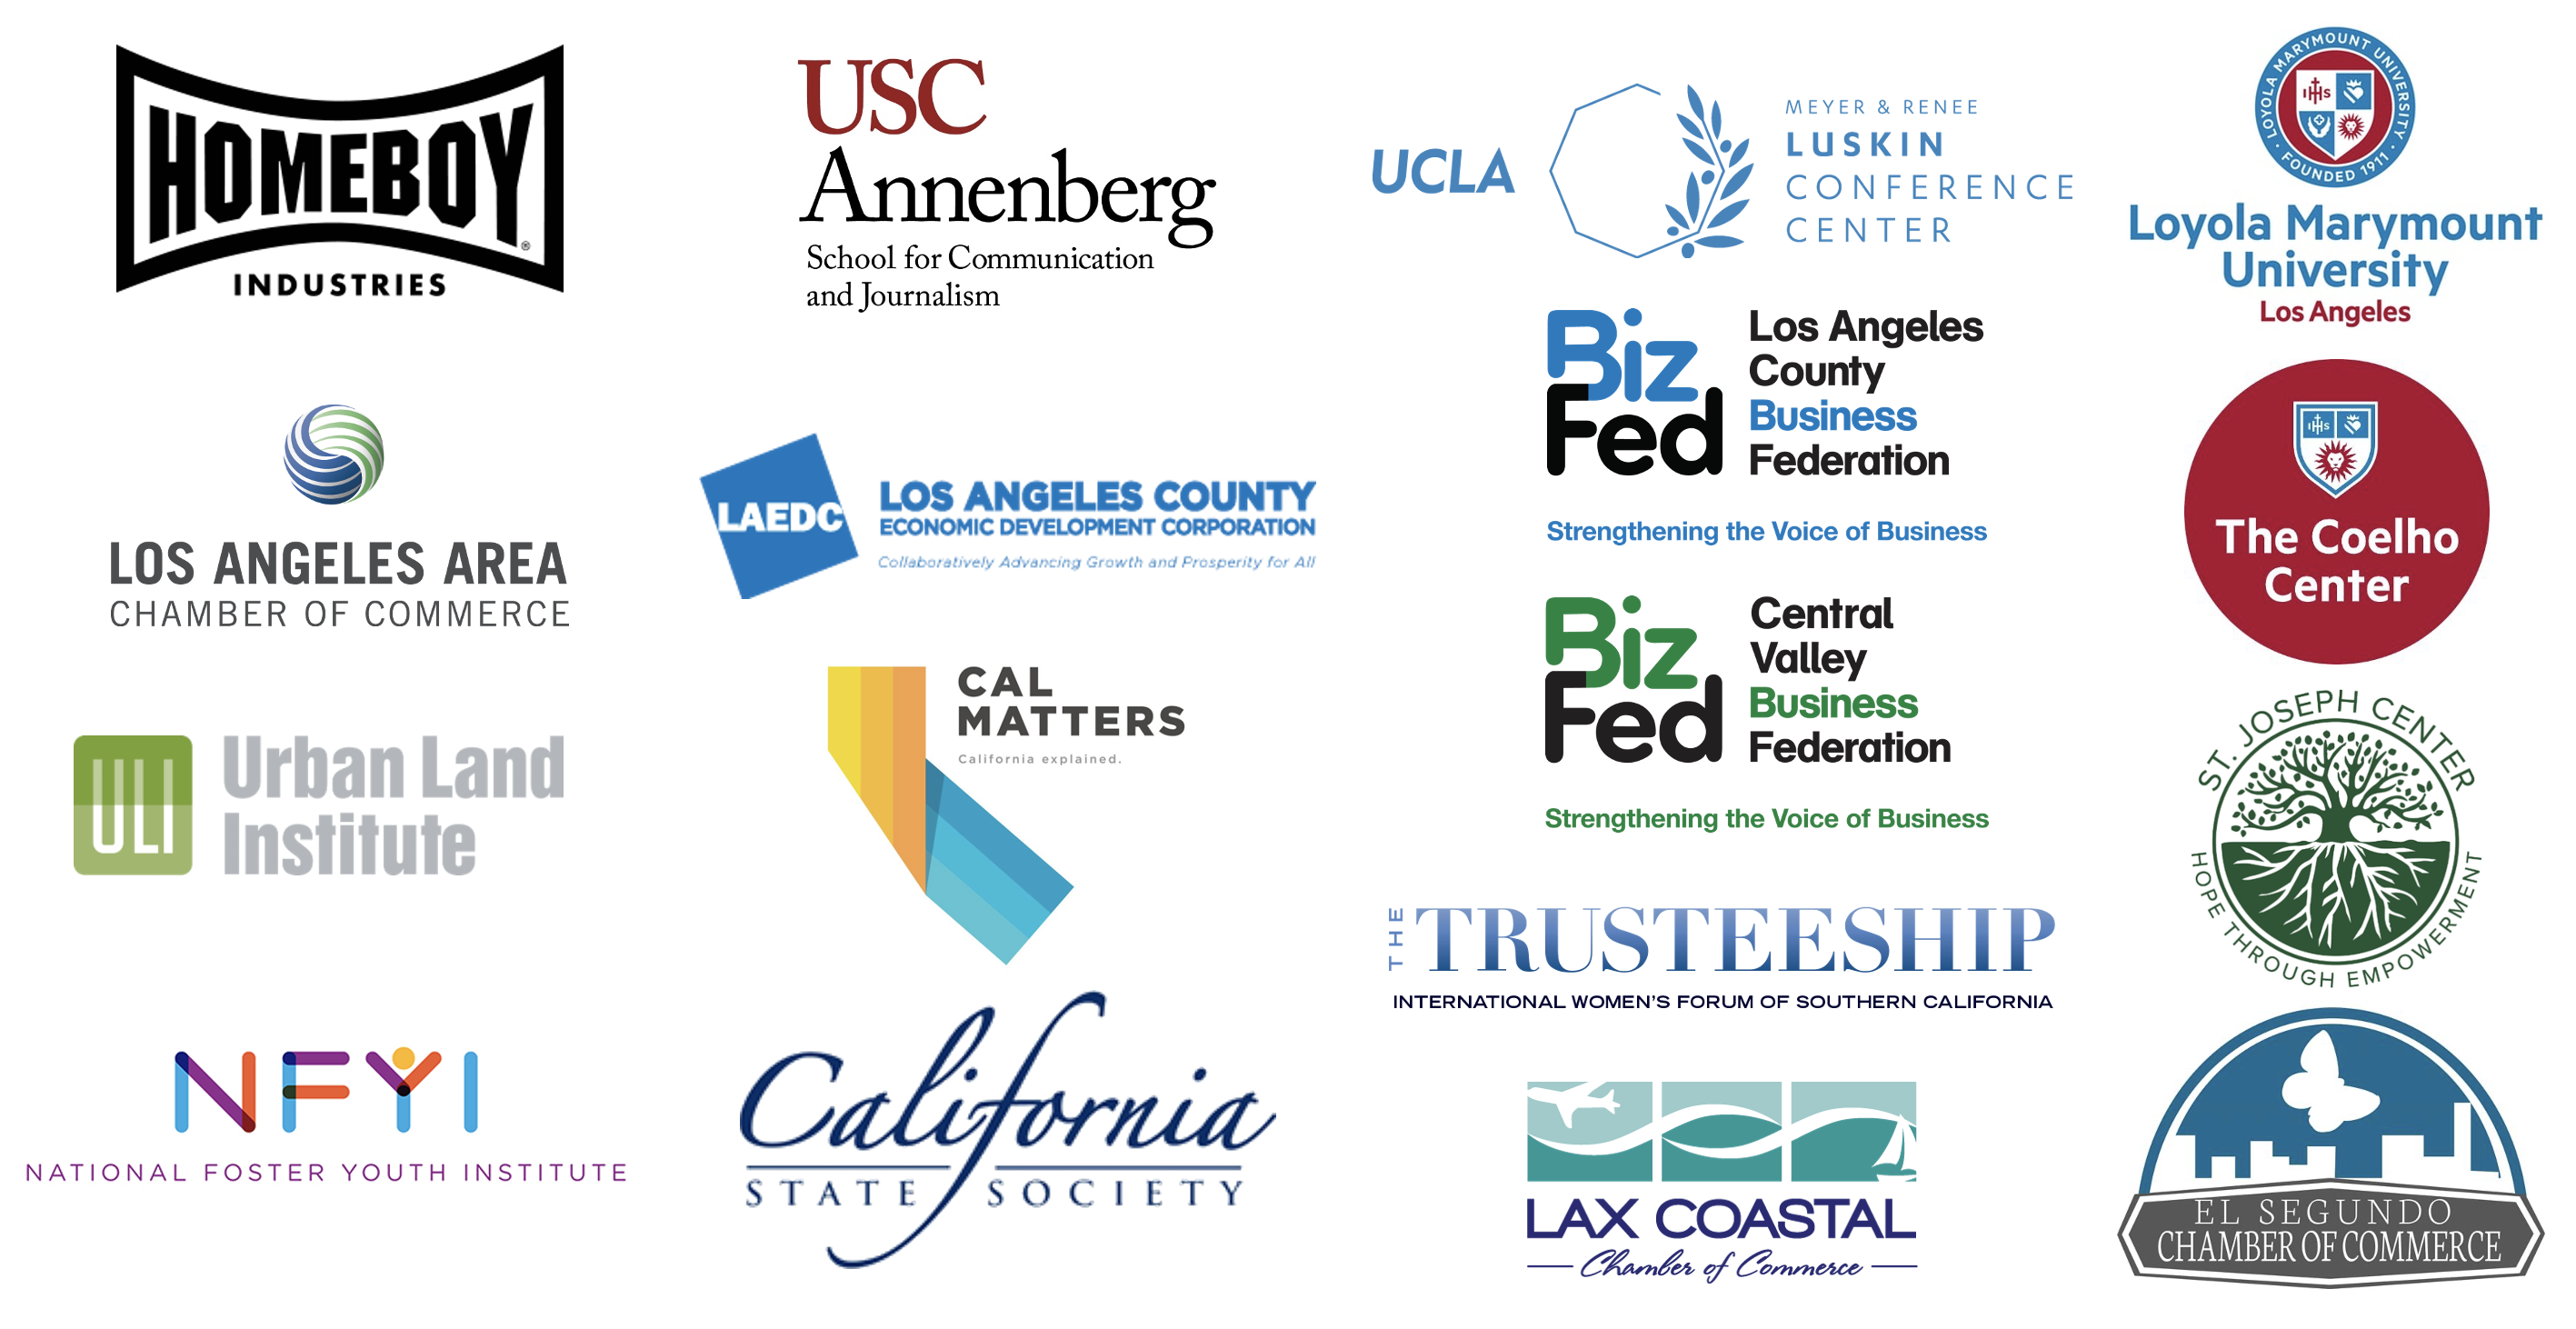 William H. Hannon Foundation, USC Annenburg, Homebody Industries, Cal Matters, The Coelho Center, Urban Land Institute, UCLA Meyer and Renee Luskin Conference Center, St. Joseph Center, NFYI, California State Society, The Trusteeship, Loyola Marymount University Los Angeles, Los Angeles Area Chamber of Commerce, Torrance Area Chamber of Commerce, El Segundo Chamber of Commerse, LAX Costal Chamber of Commerce, LAEDC, BizFed Los Angeles, BizFed Central Valley